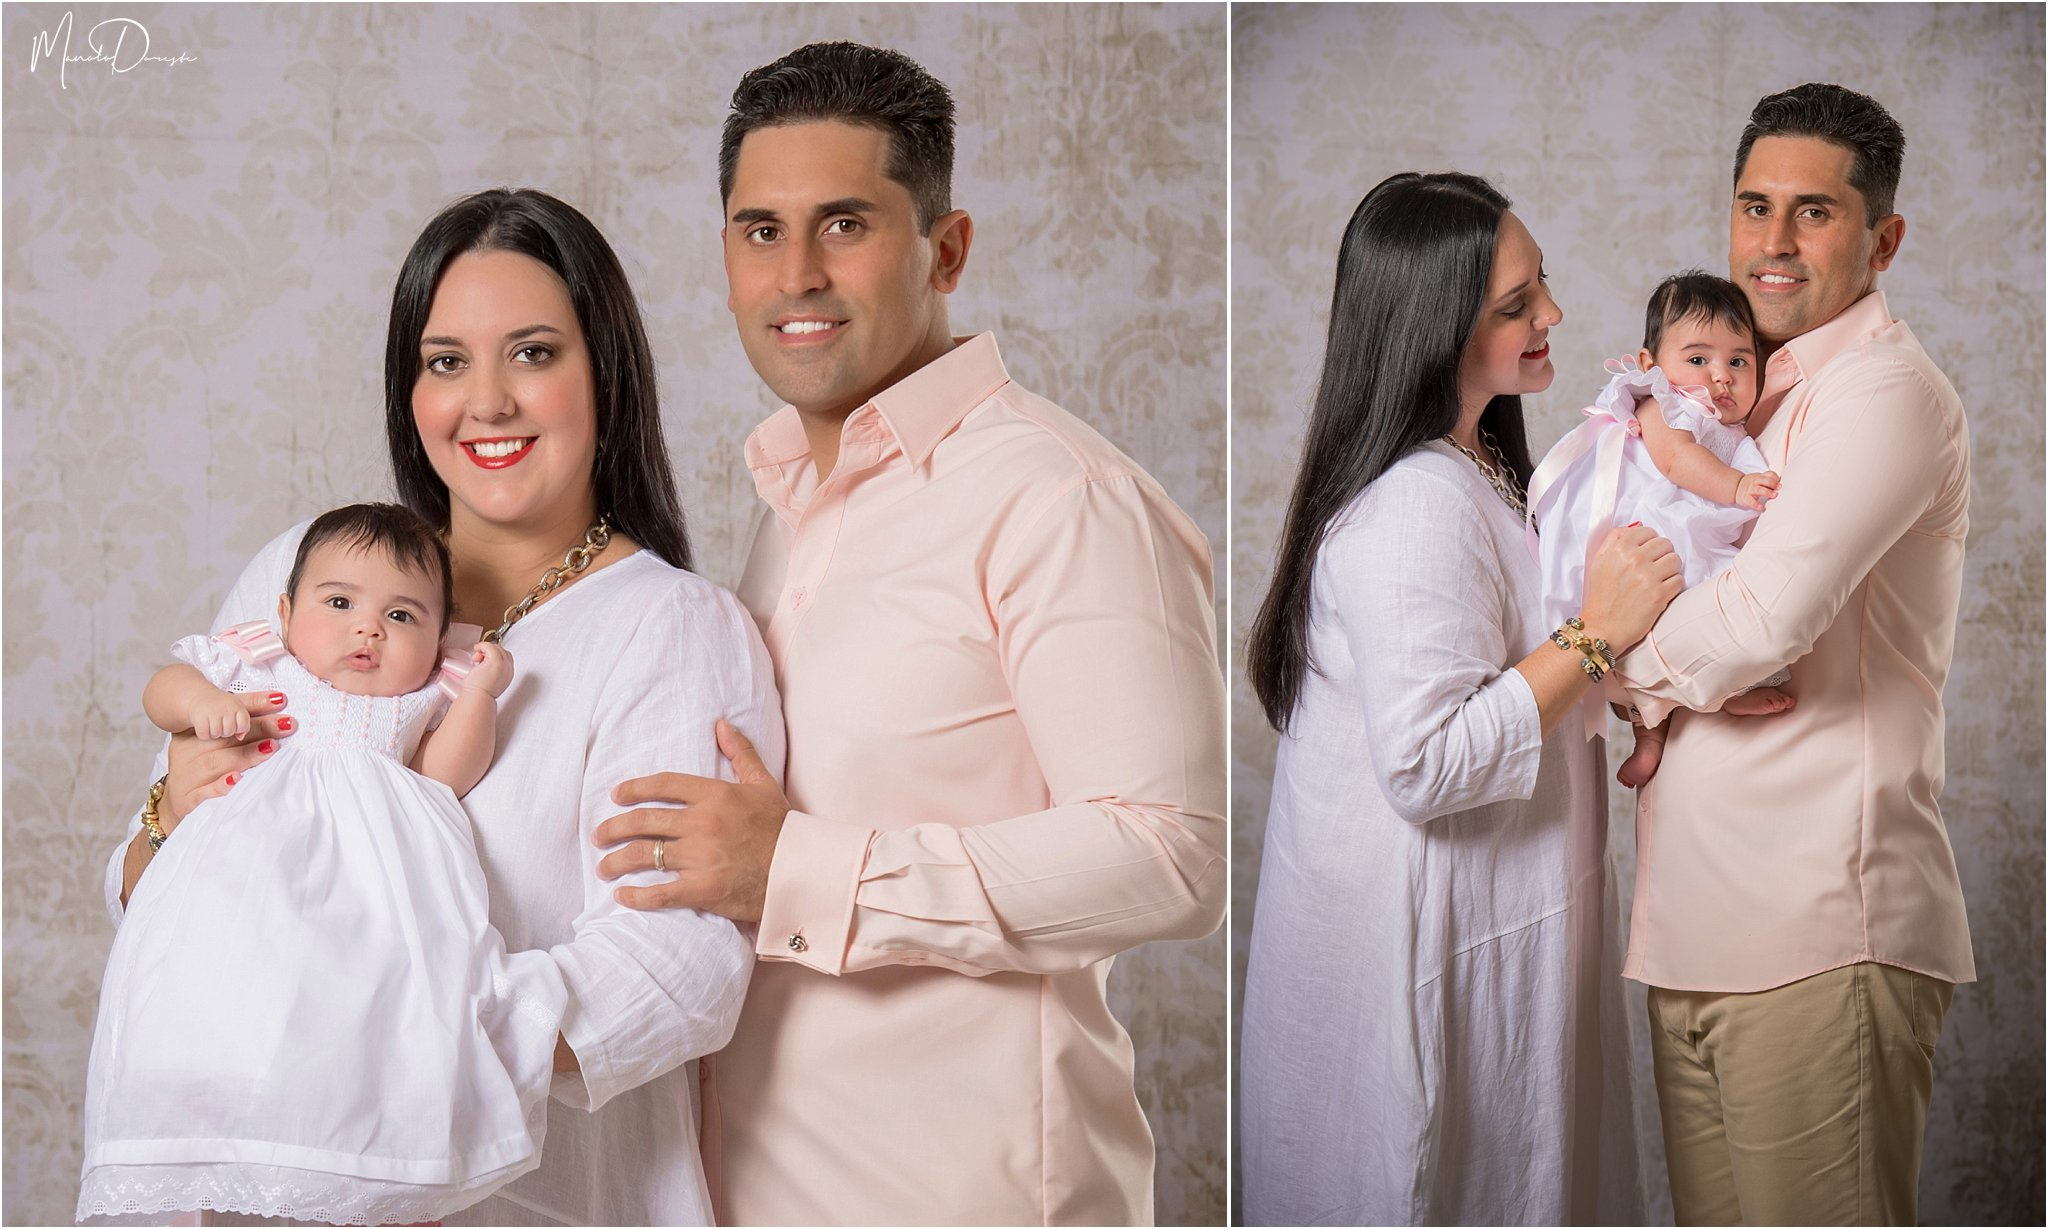 0212_ManoloDoreste_InFocusStudios_Wedding_Family_Photography_Miami_MiamiPhotographer.jpg